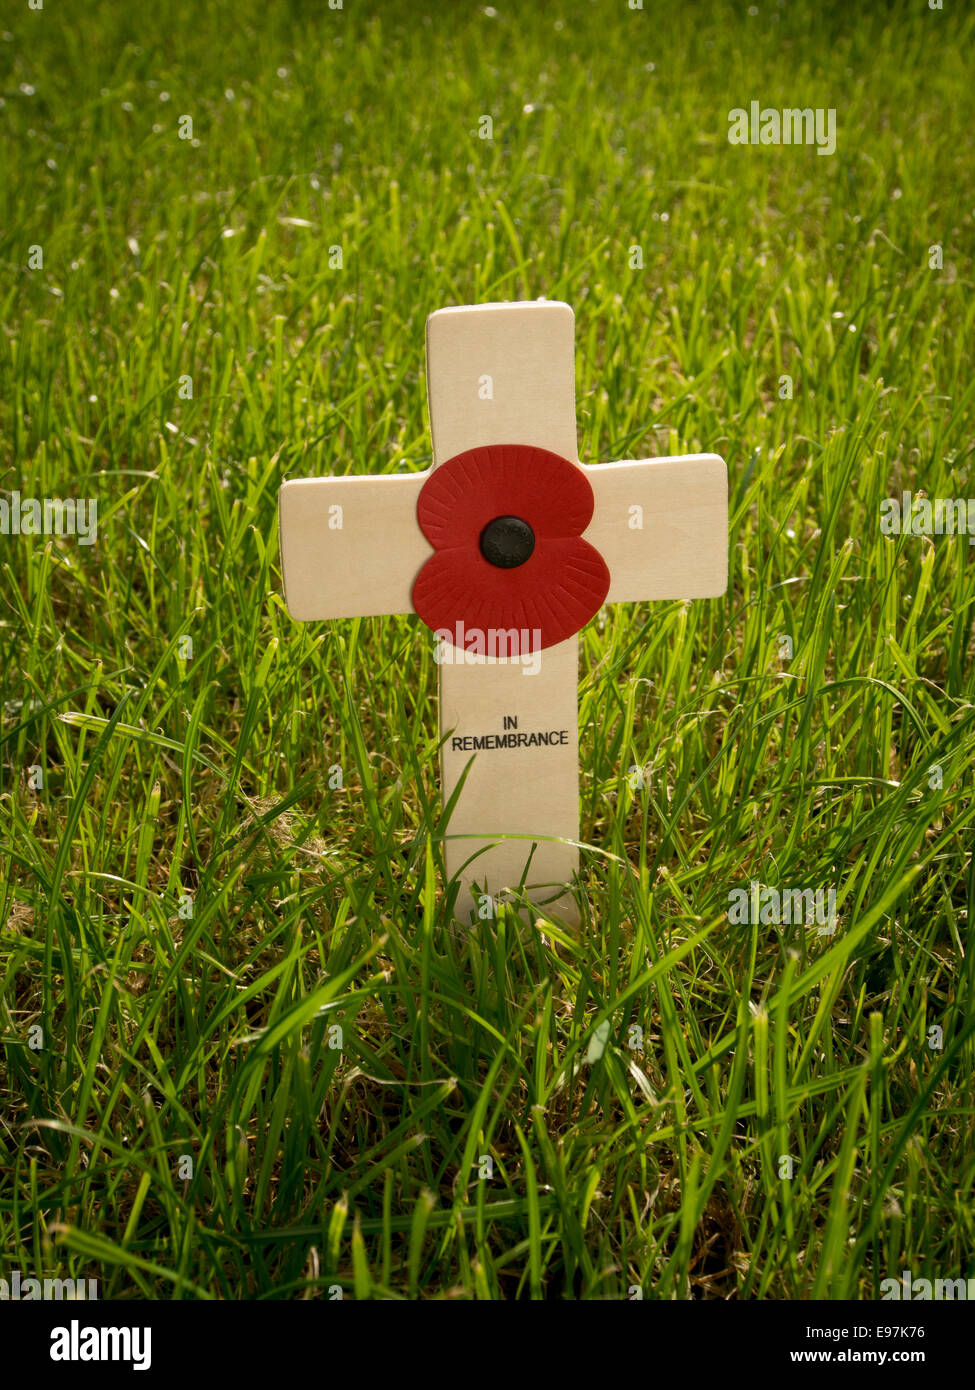 Wooden Poppy Appeal In Remembrance cross in grass. - Stock Image